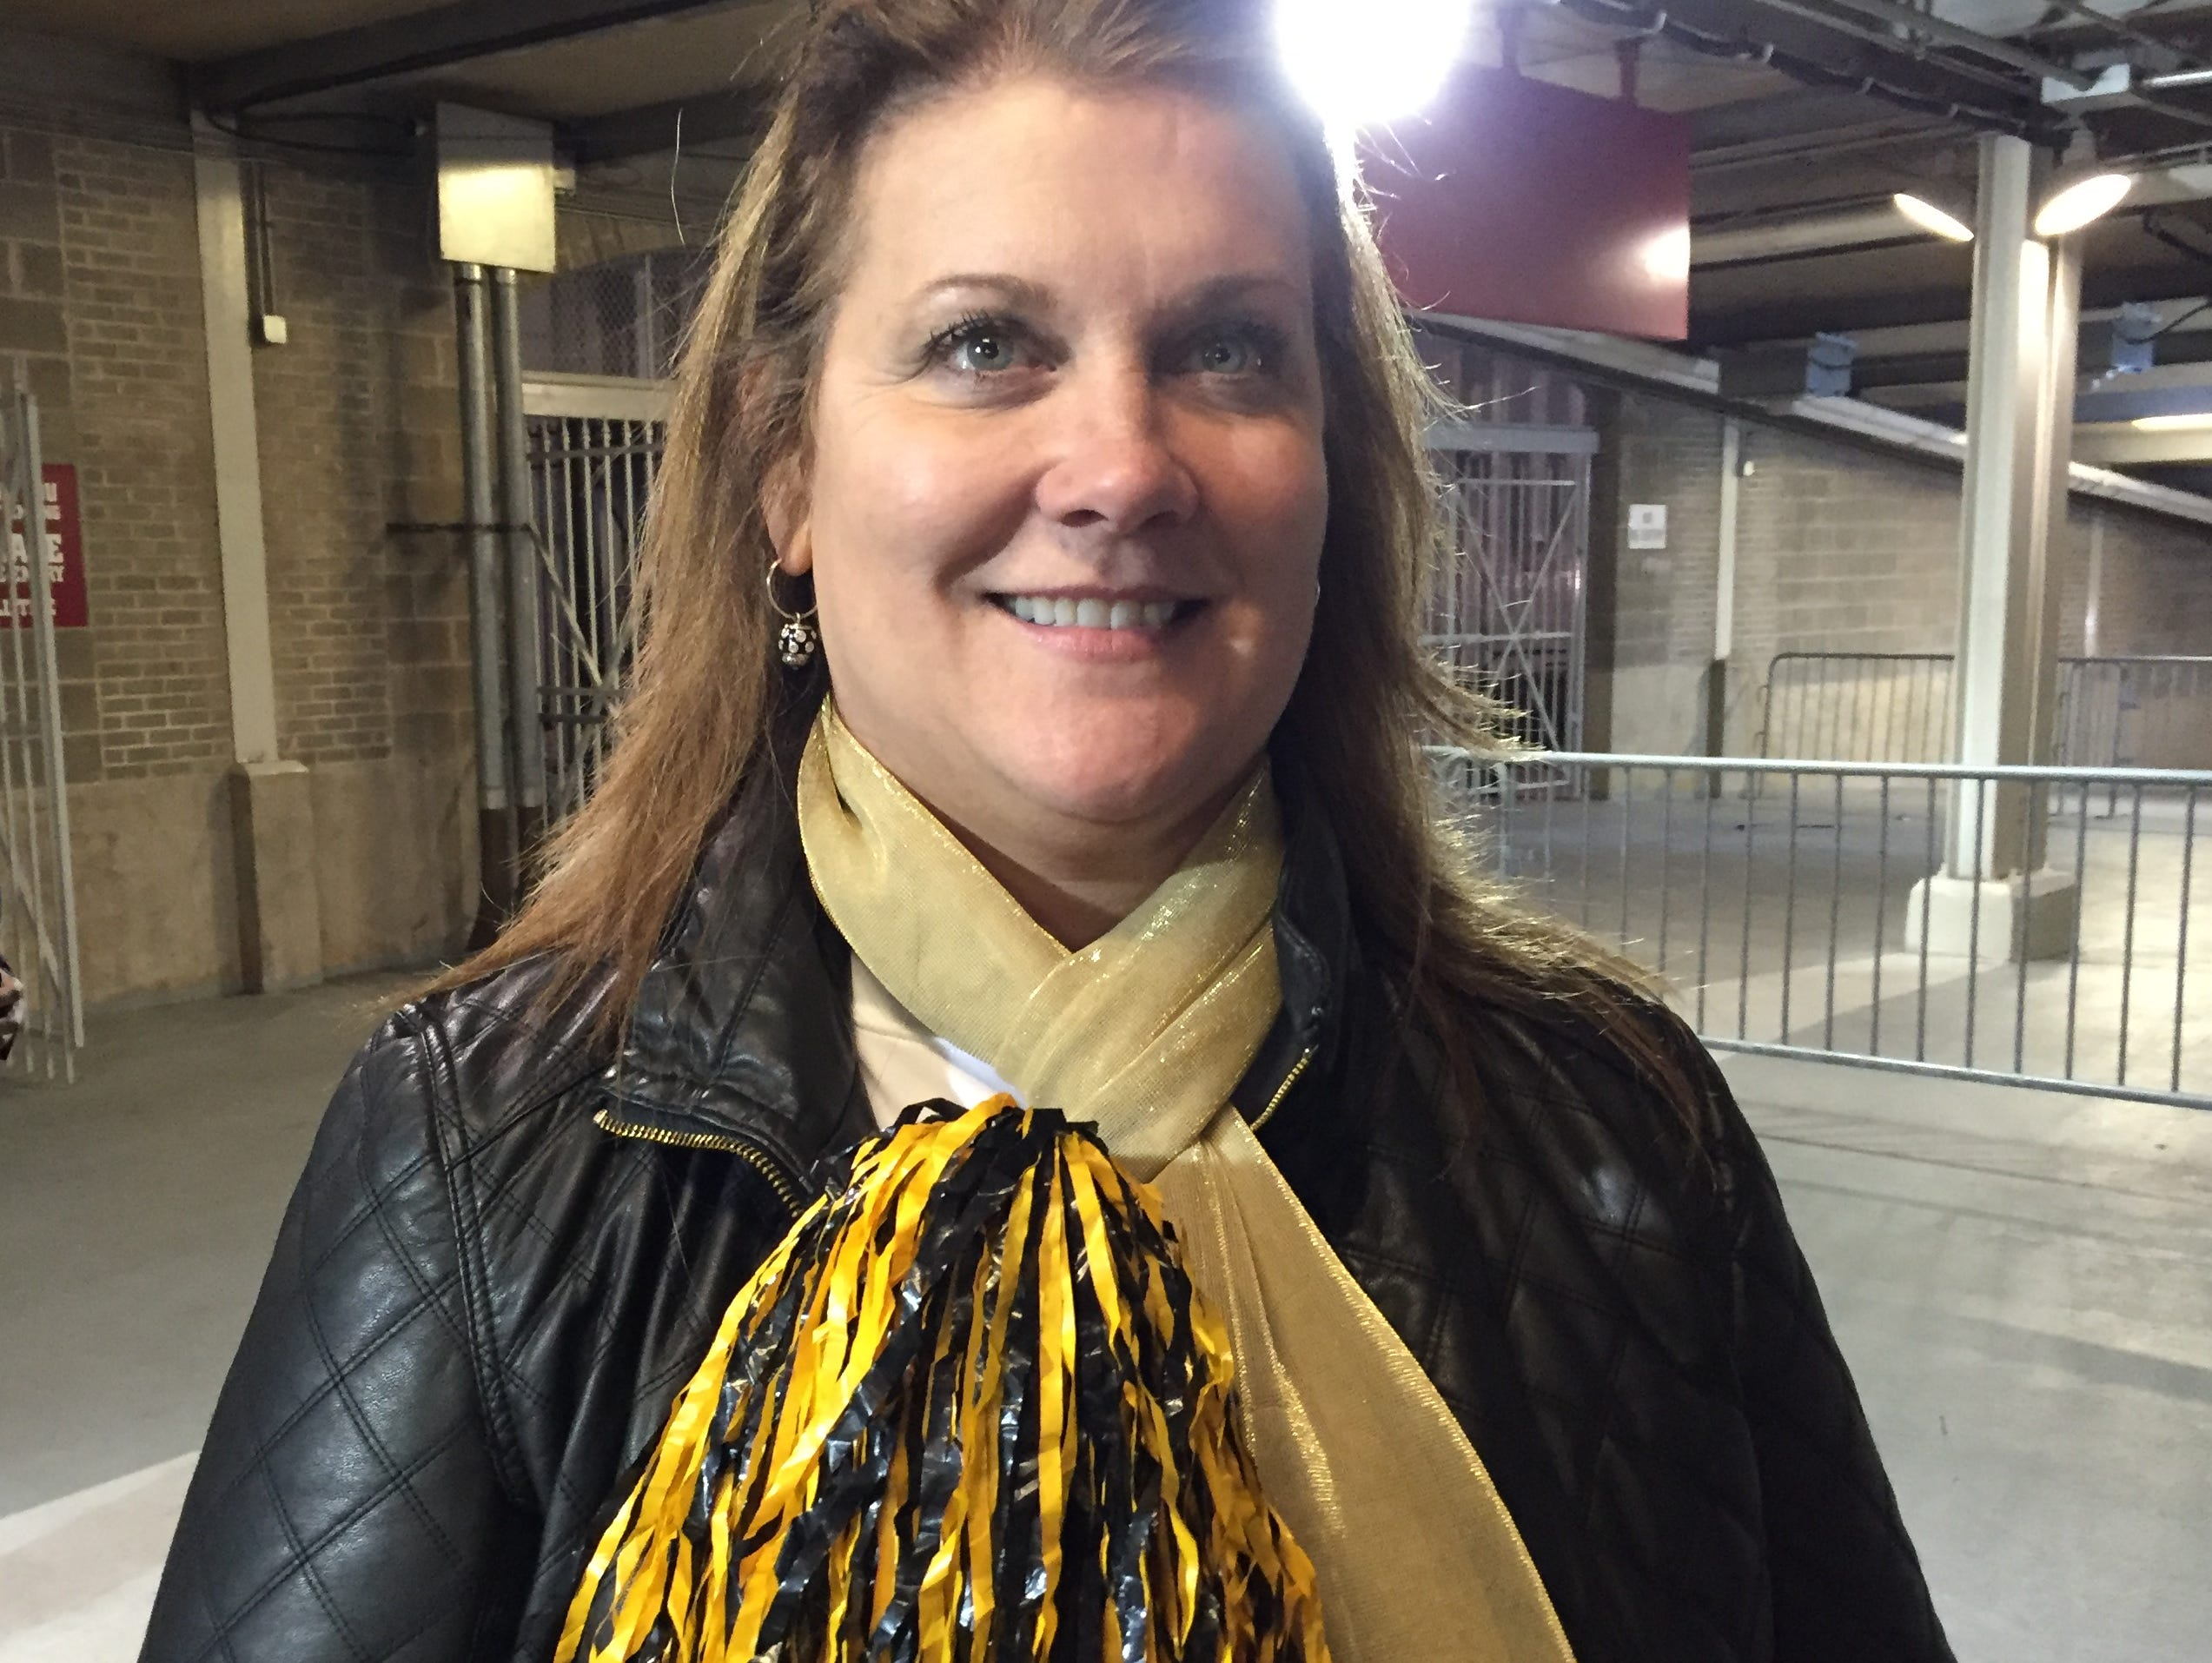 Troy women's basketball coach Chanda Rigby shows her support for Elba after Friday's 2A championship. Her son is the quarterback and her husband the coach of the Tigers.